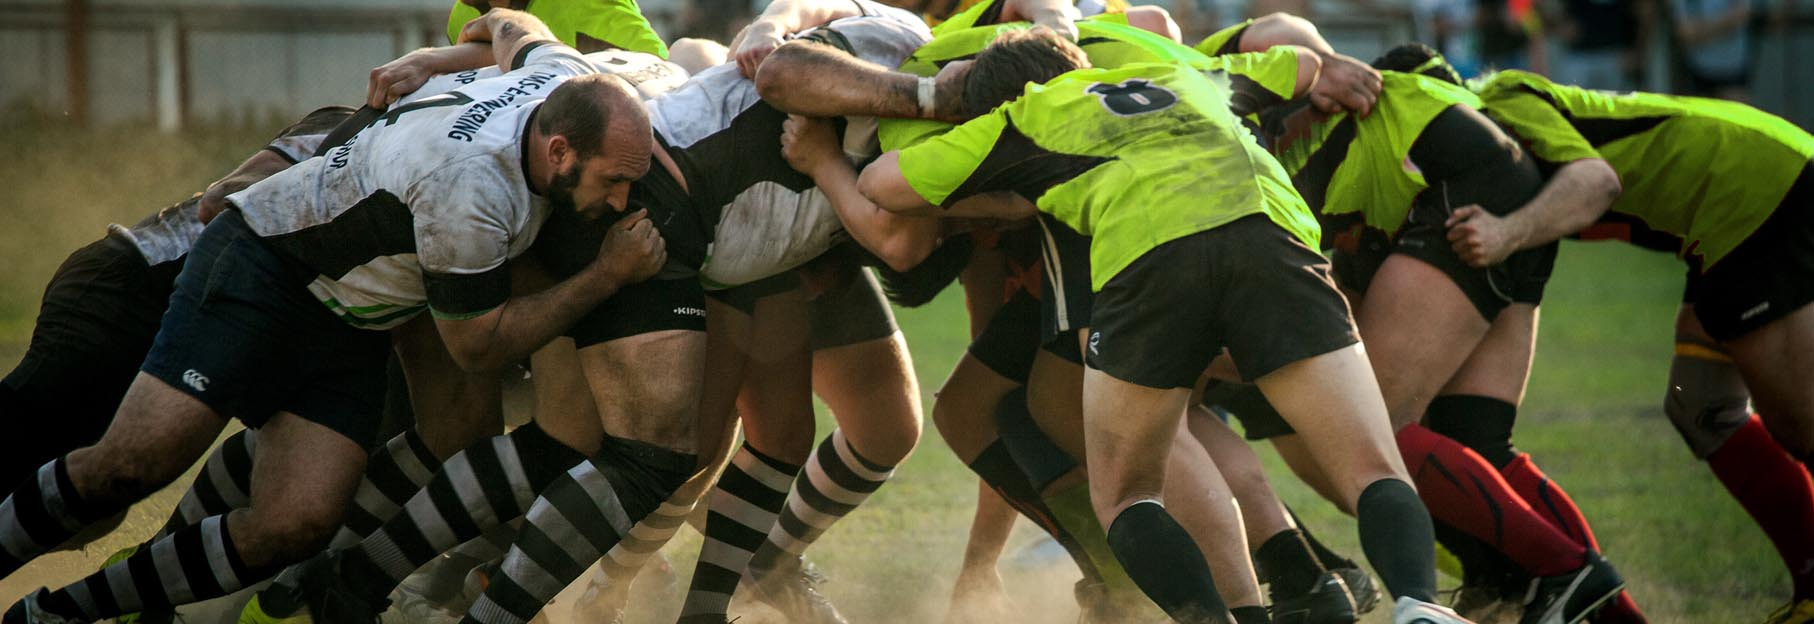 rugby players wearing a mouthguard during a game